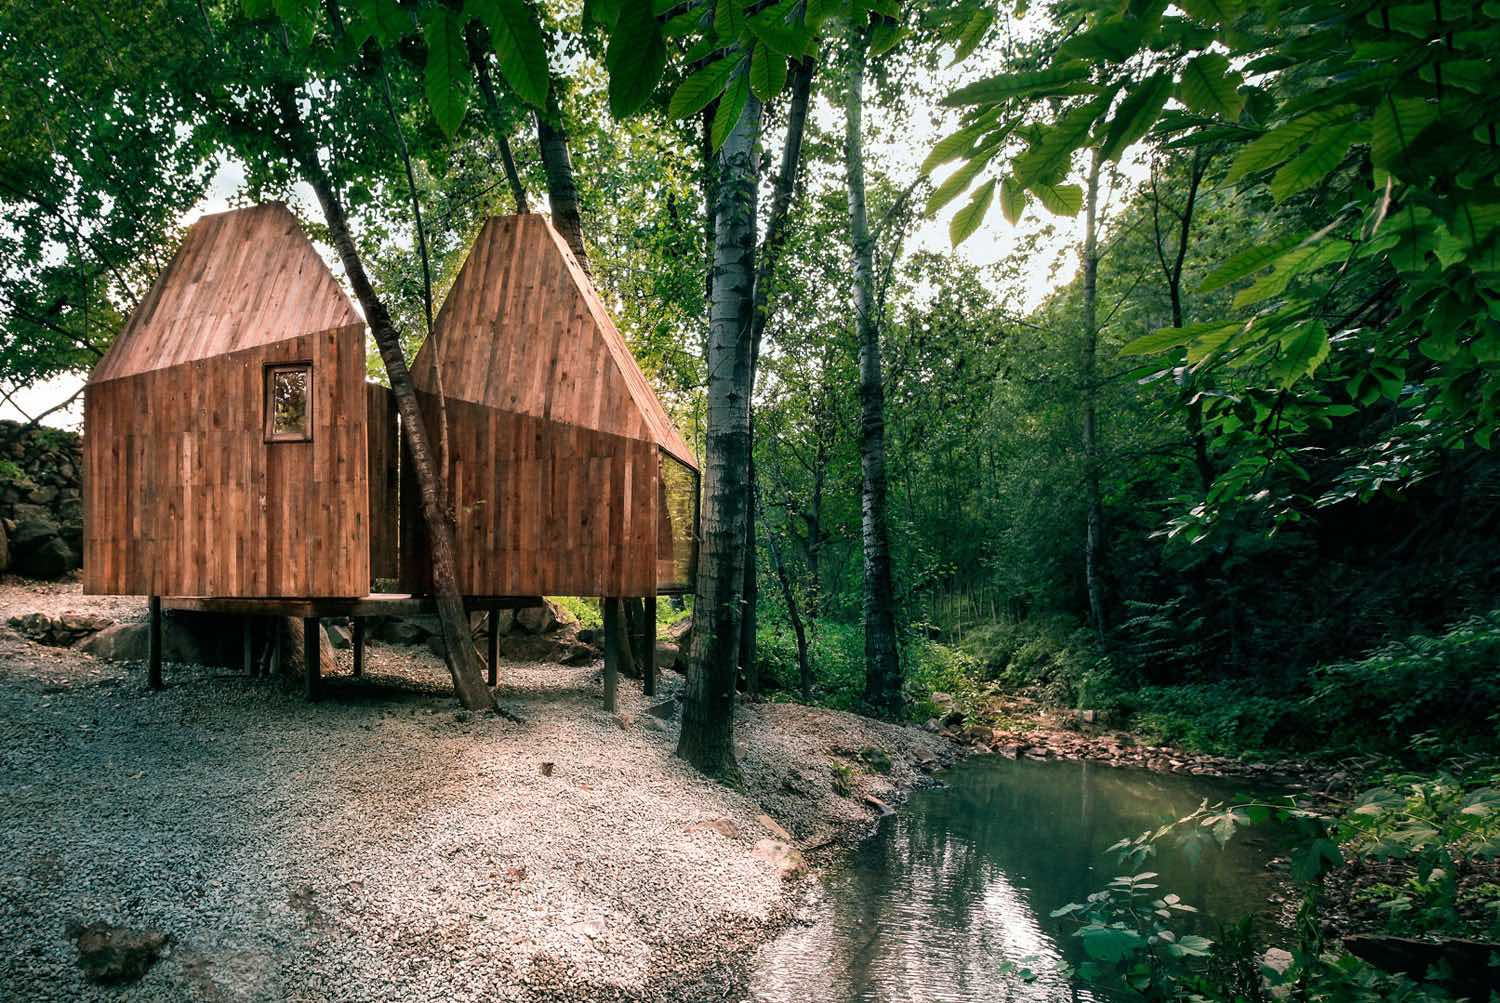 Architecture-Wee-Studio-Treehouse-10